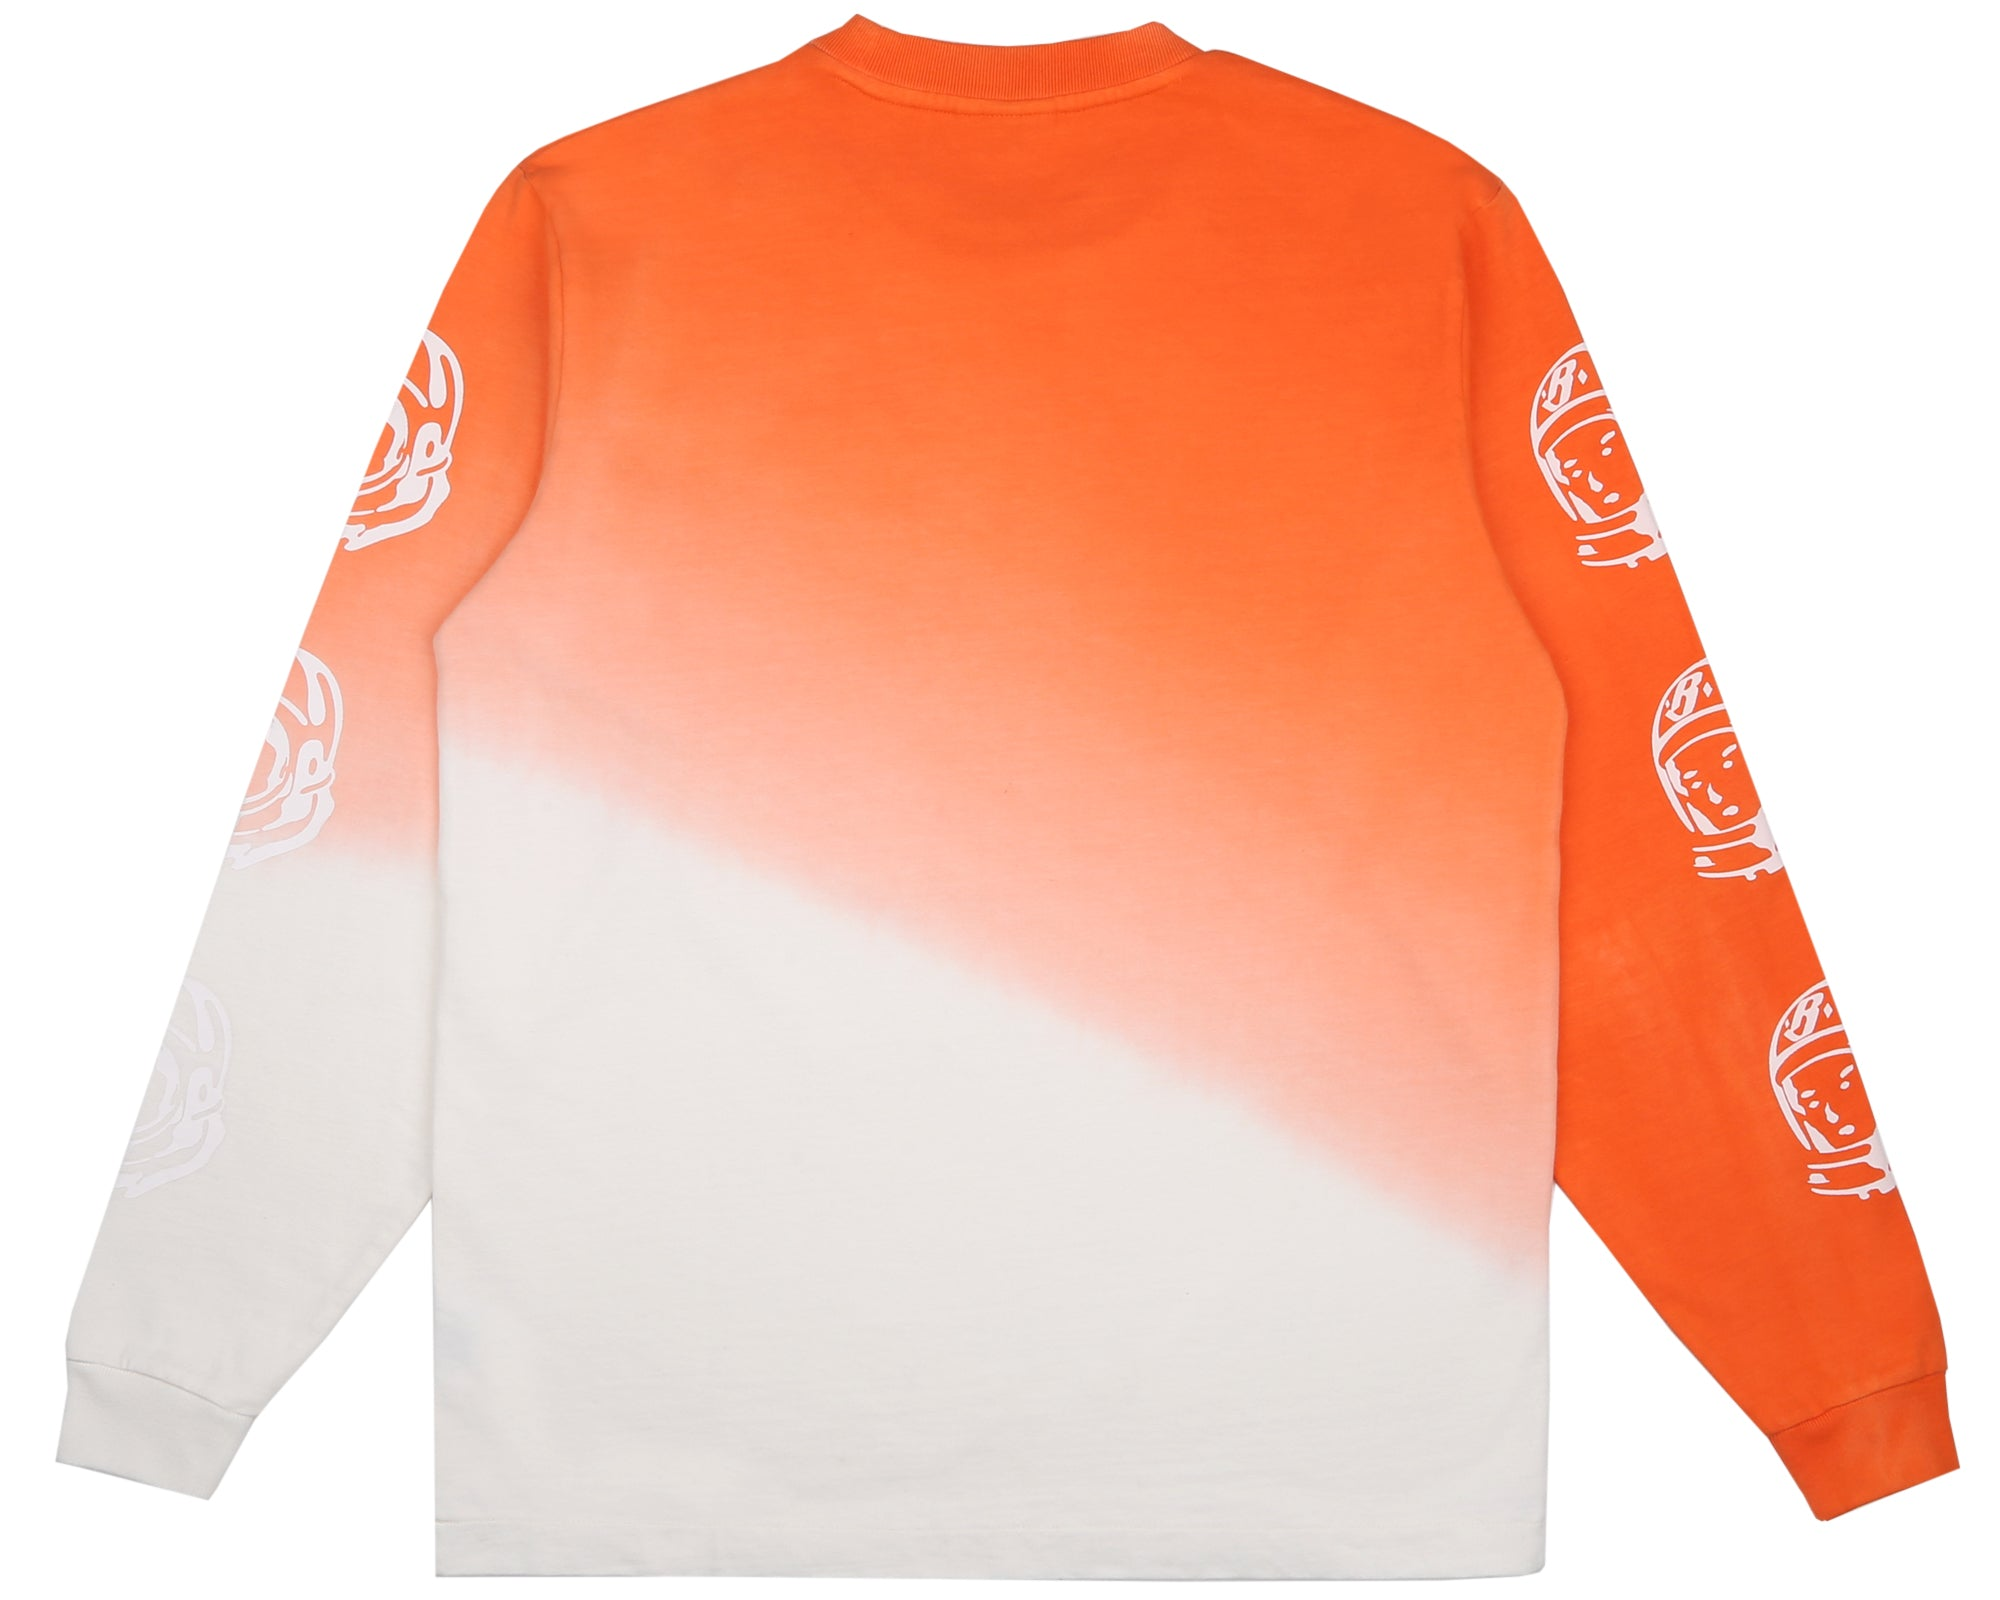 BLEACHED L/S T-SHIRT - CORAL